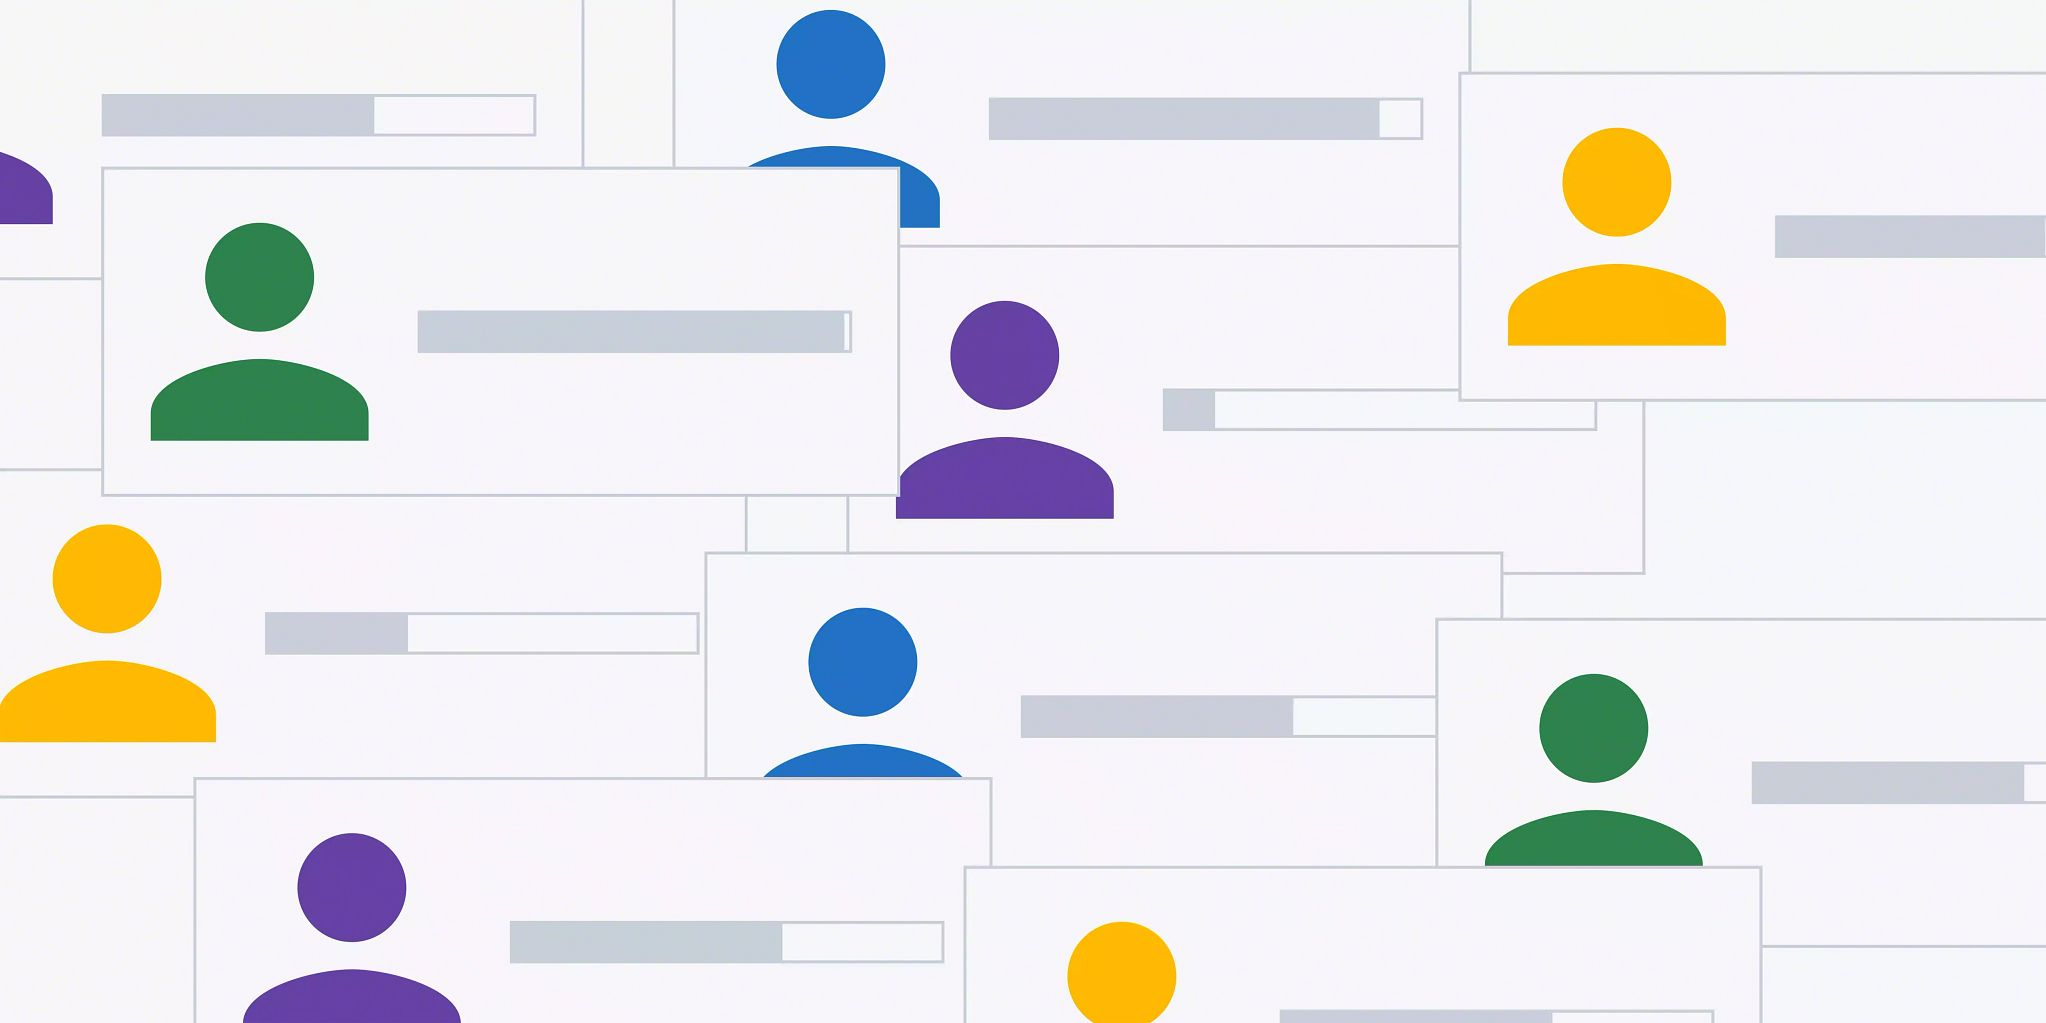 Overlaid graphics that look like business cards with solid colored illustrations to represent people and a progress bar on each one set to varying lengths.